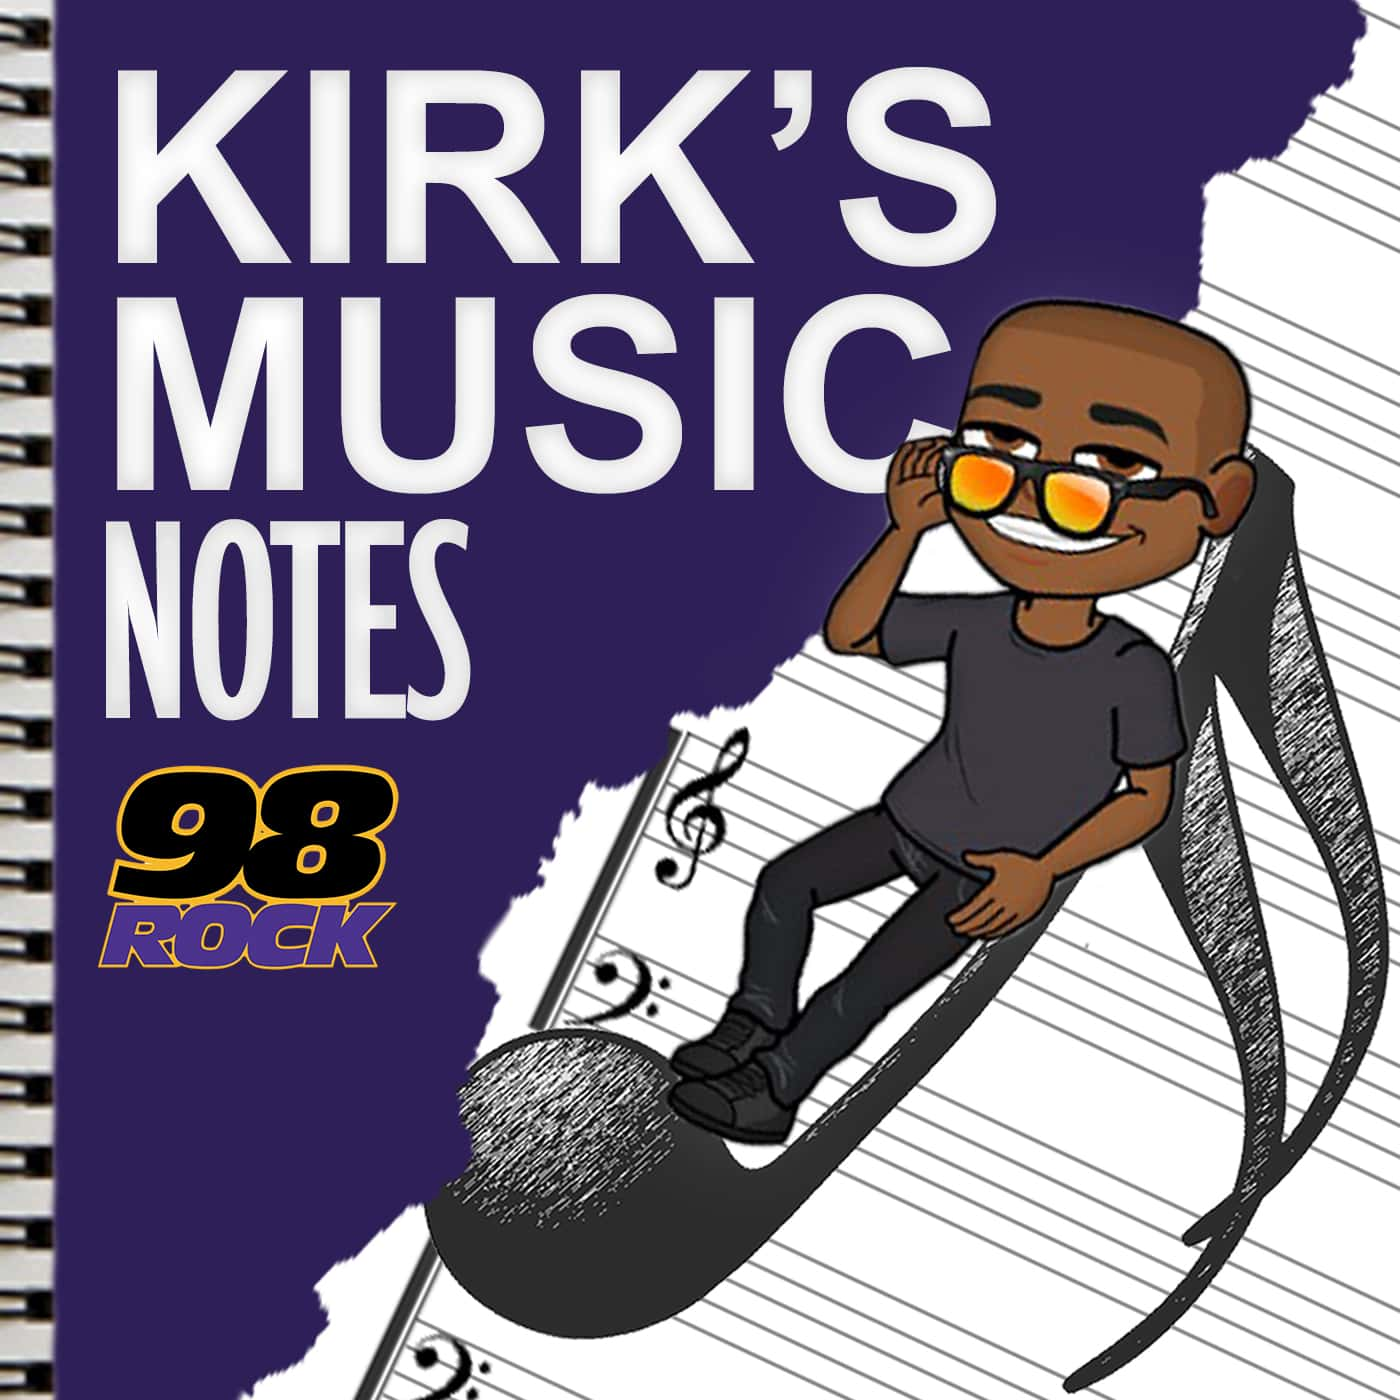 Kirk's Music Notes | 98 Rock Baltimore - Part 8